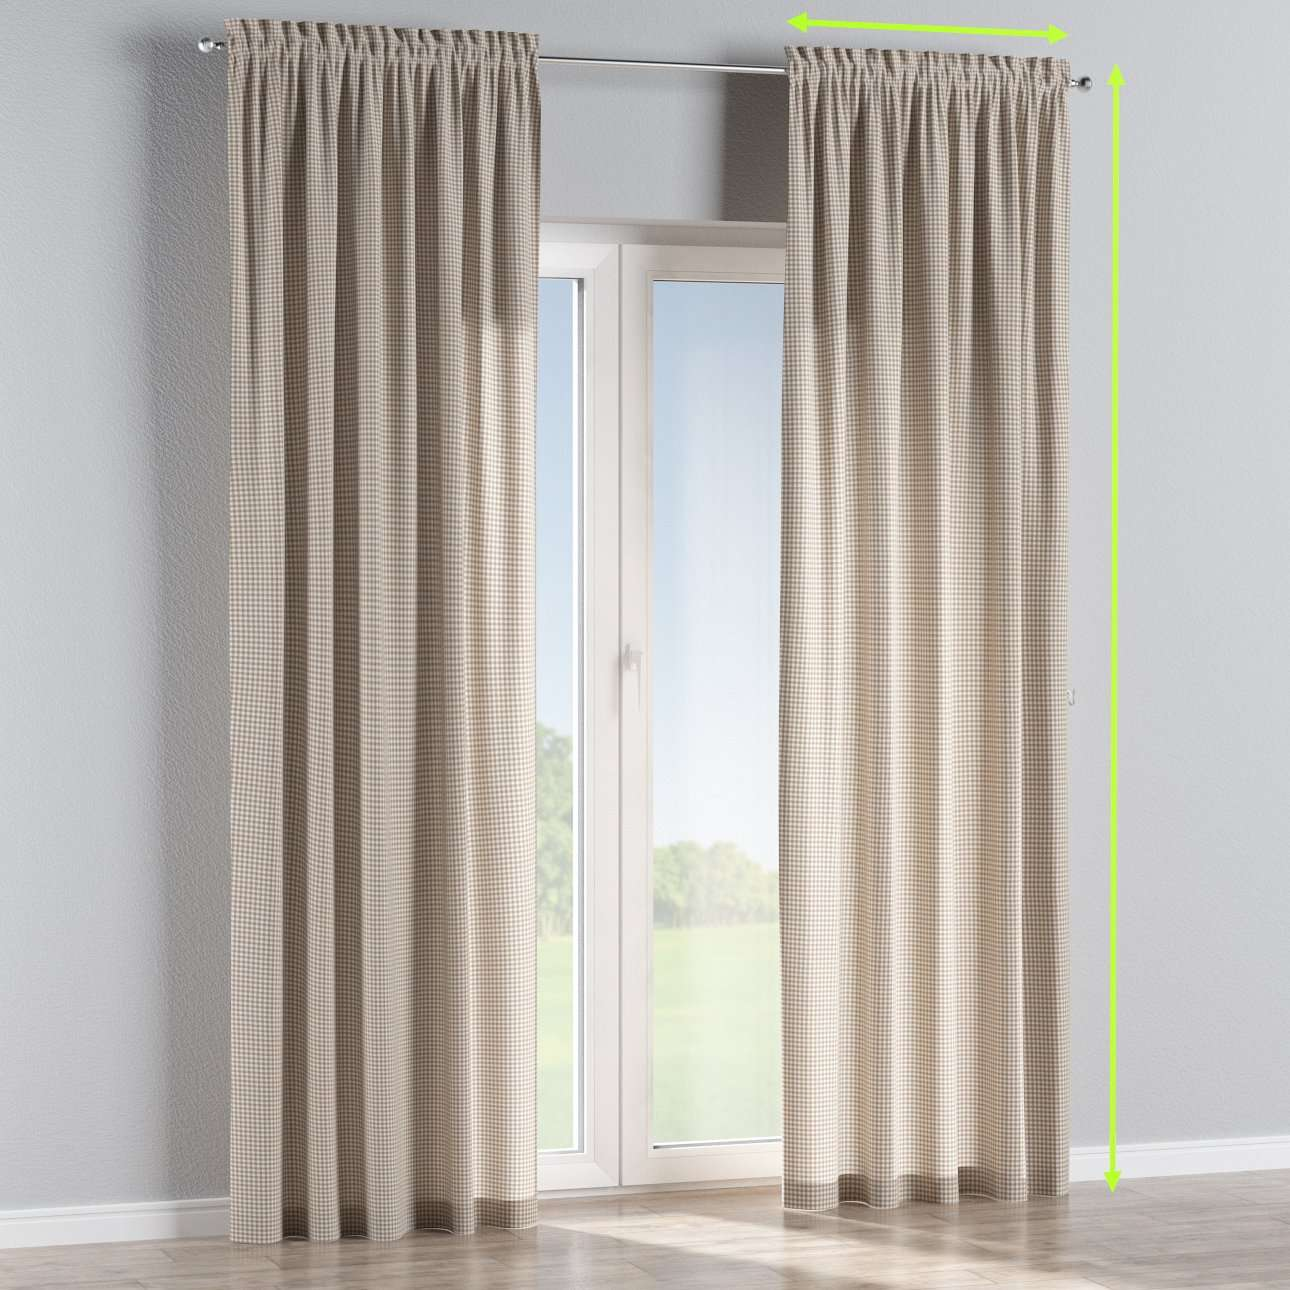 Slot and frill lined curtains in collection Quadro, fabric: 136-05